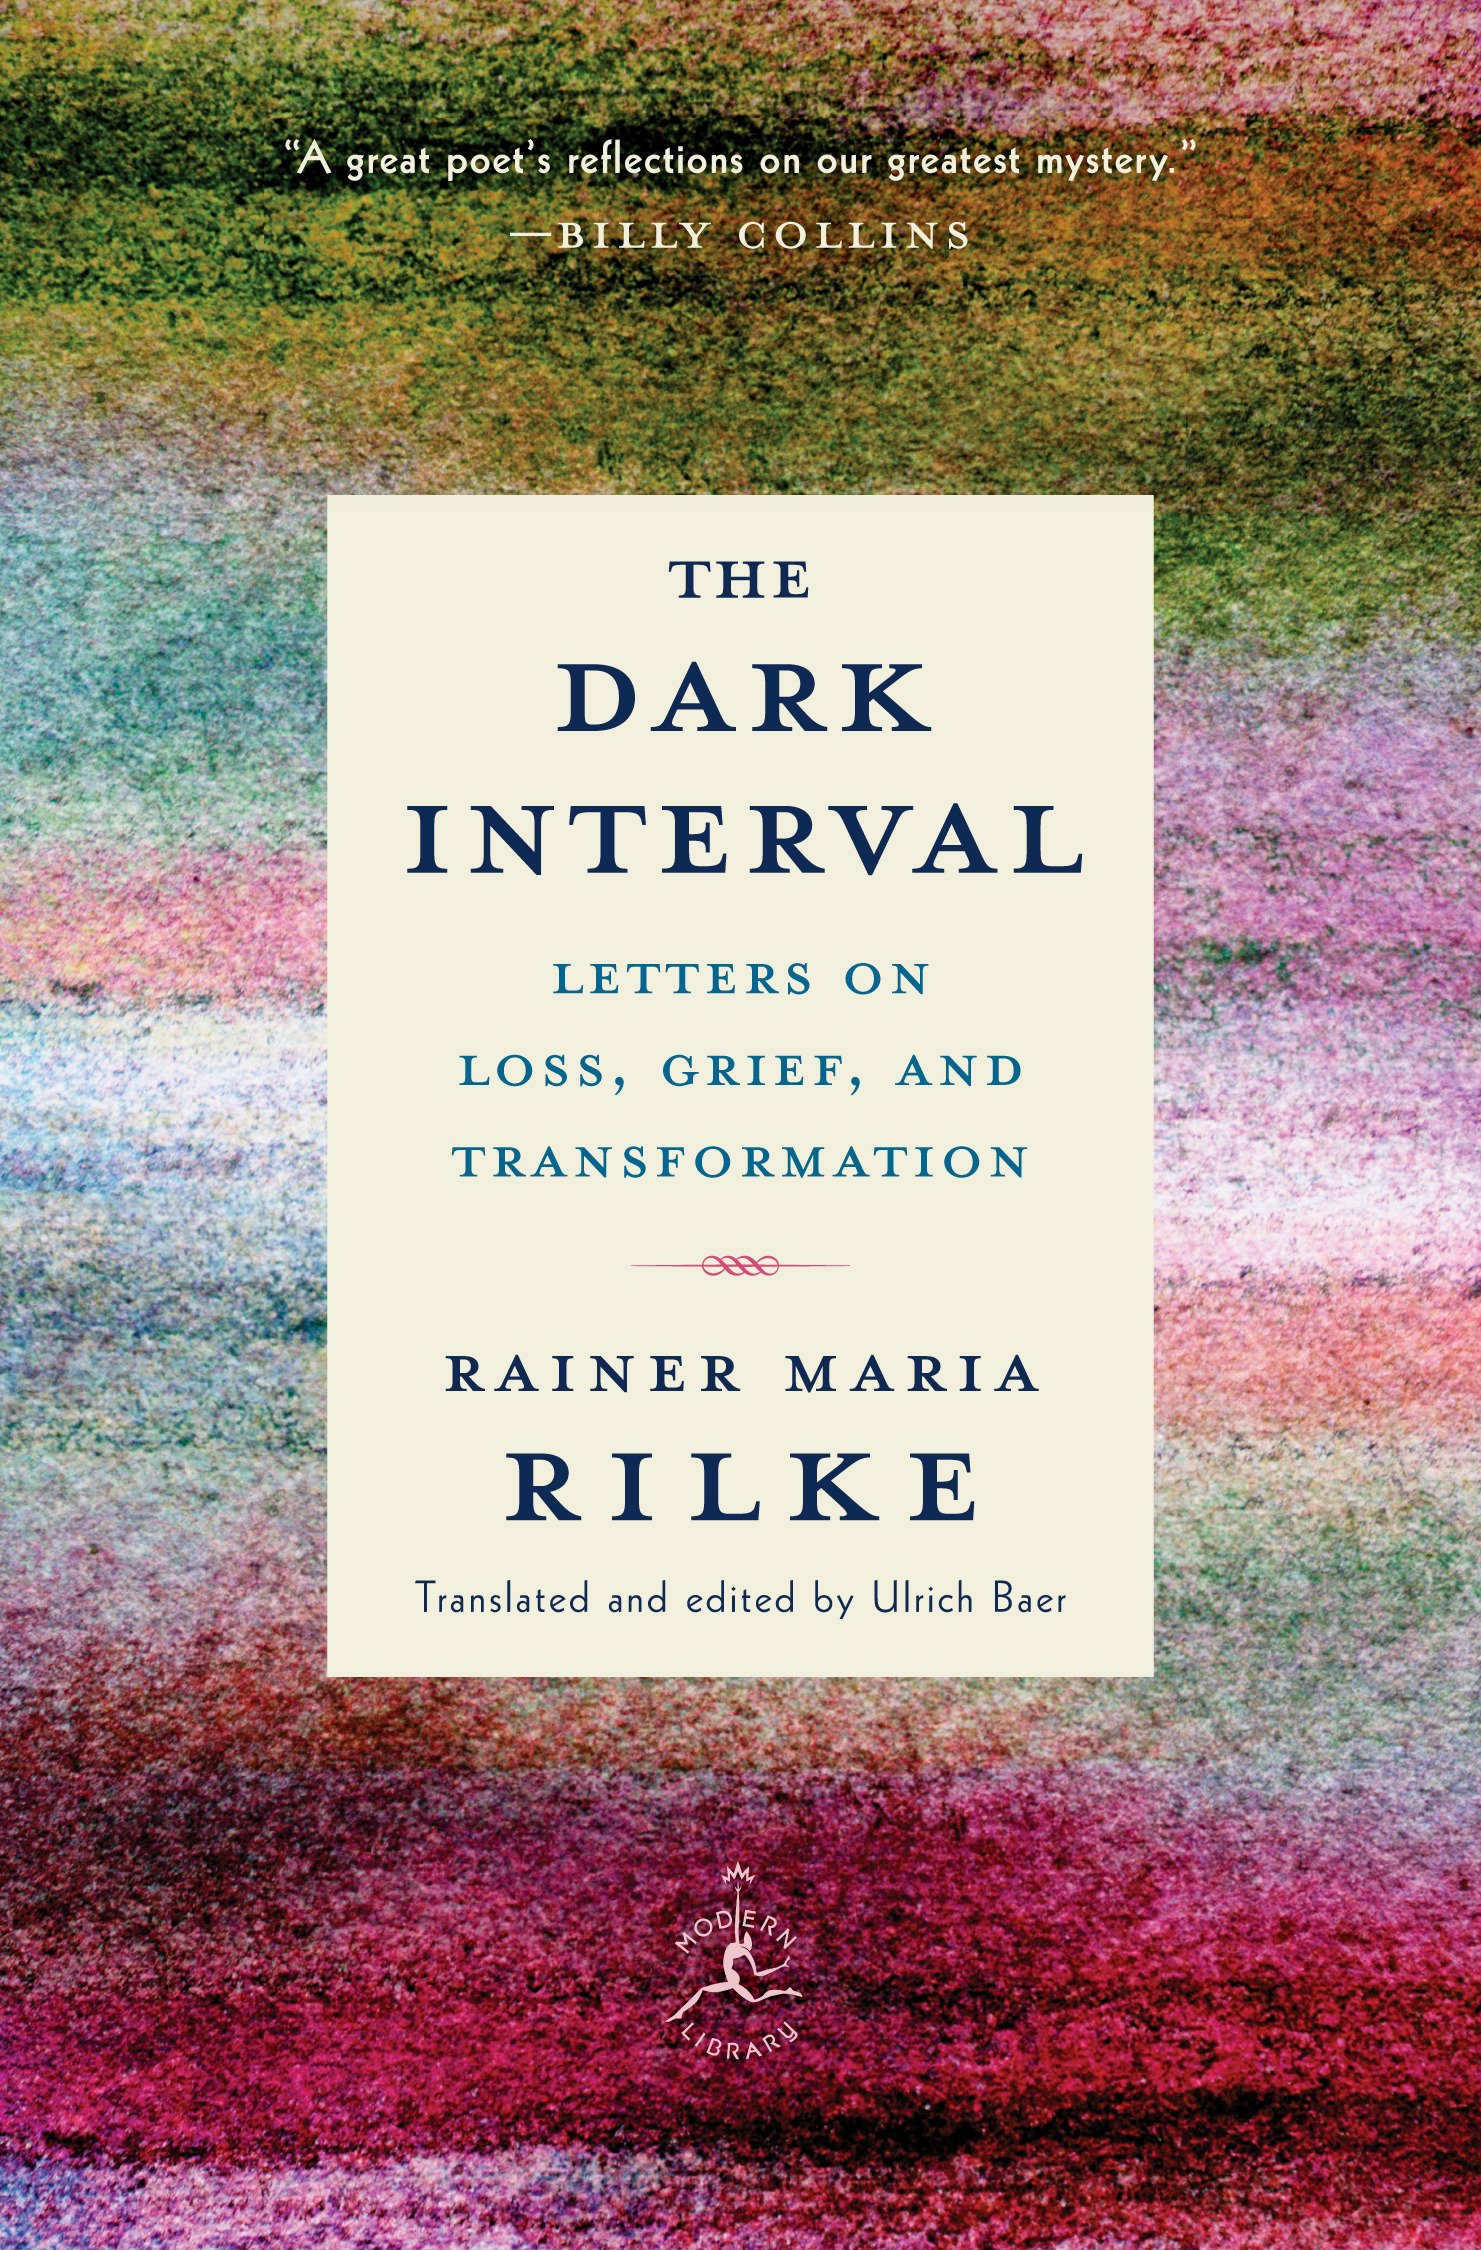 The Dark Interval: Letters on Loss, Grief, and Transformation (Modern  Library Classics): Rainer Maria Rilke, Ulrich Baer: 9780525509844: Amazon.com:  Books